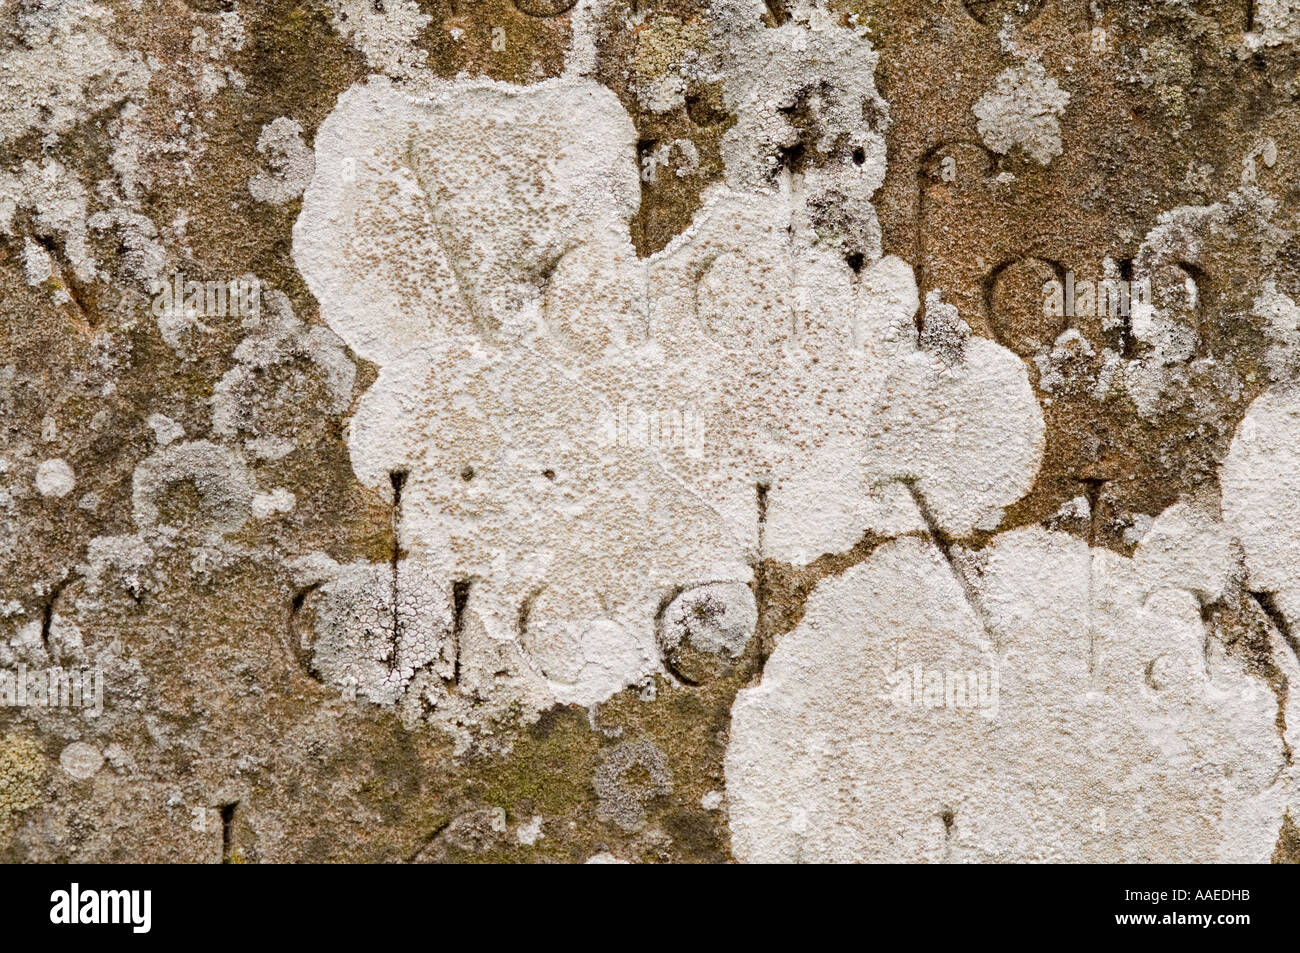 Lichen on gravestone Mucher village graveyard, Upper Swaledale, North Yorkshire, England, UK - Stock Image